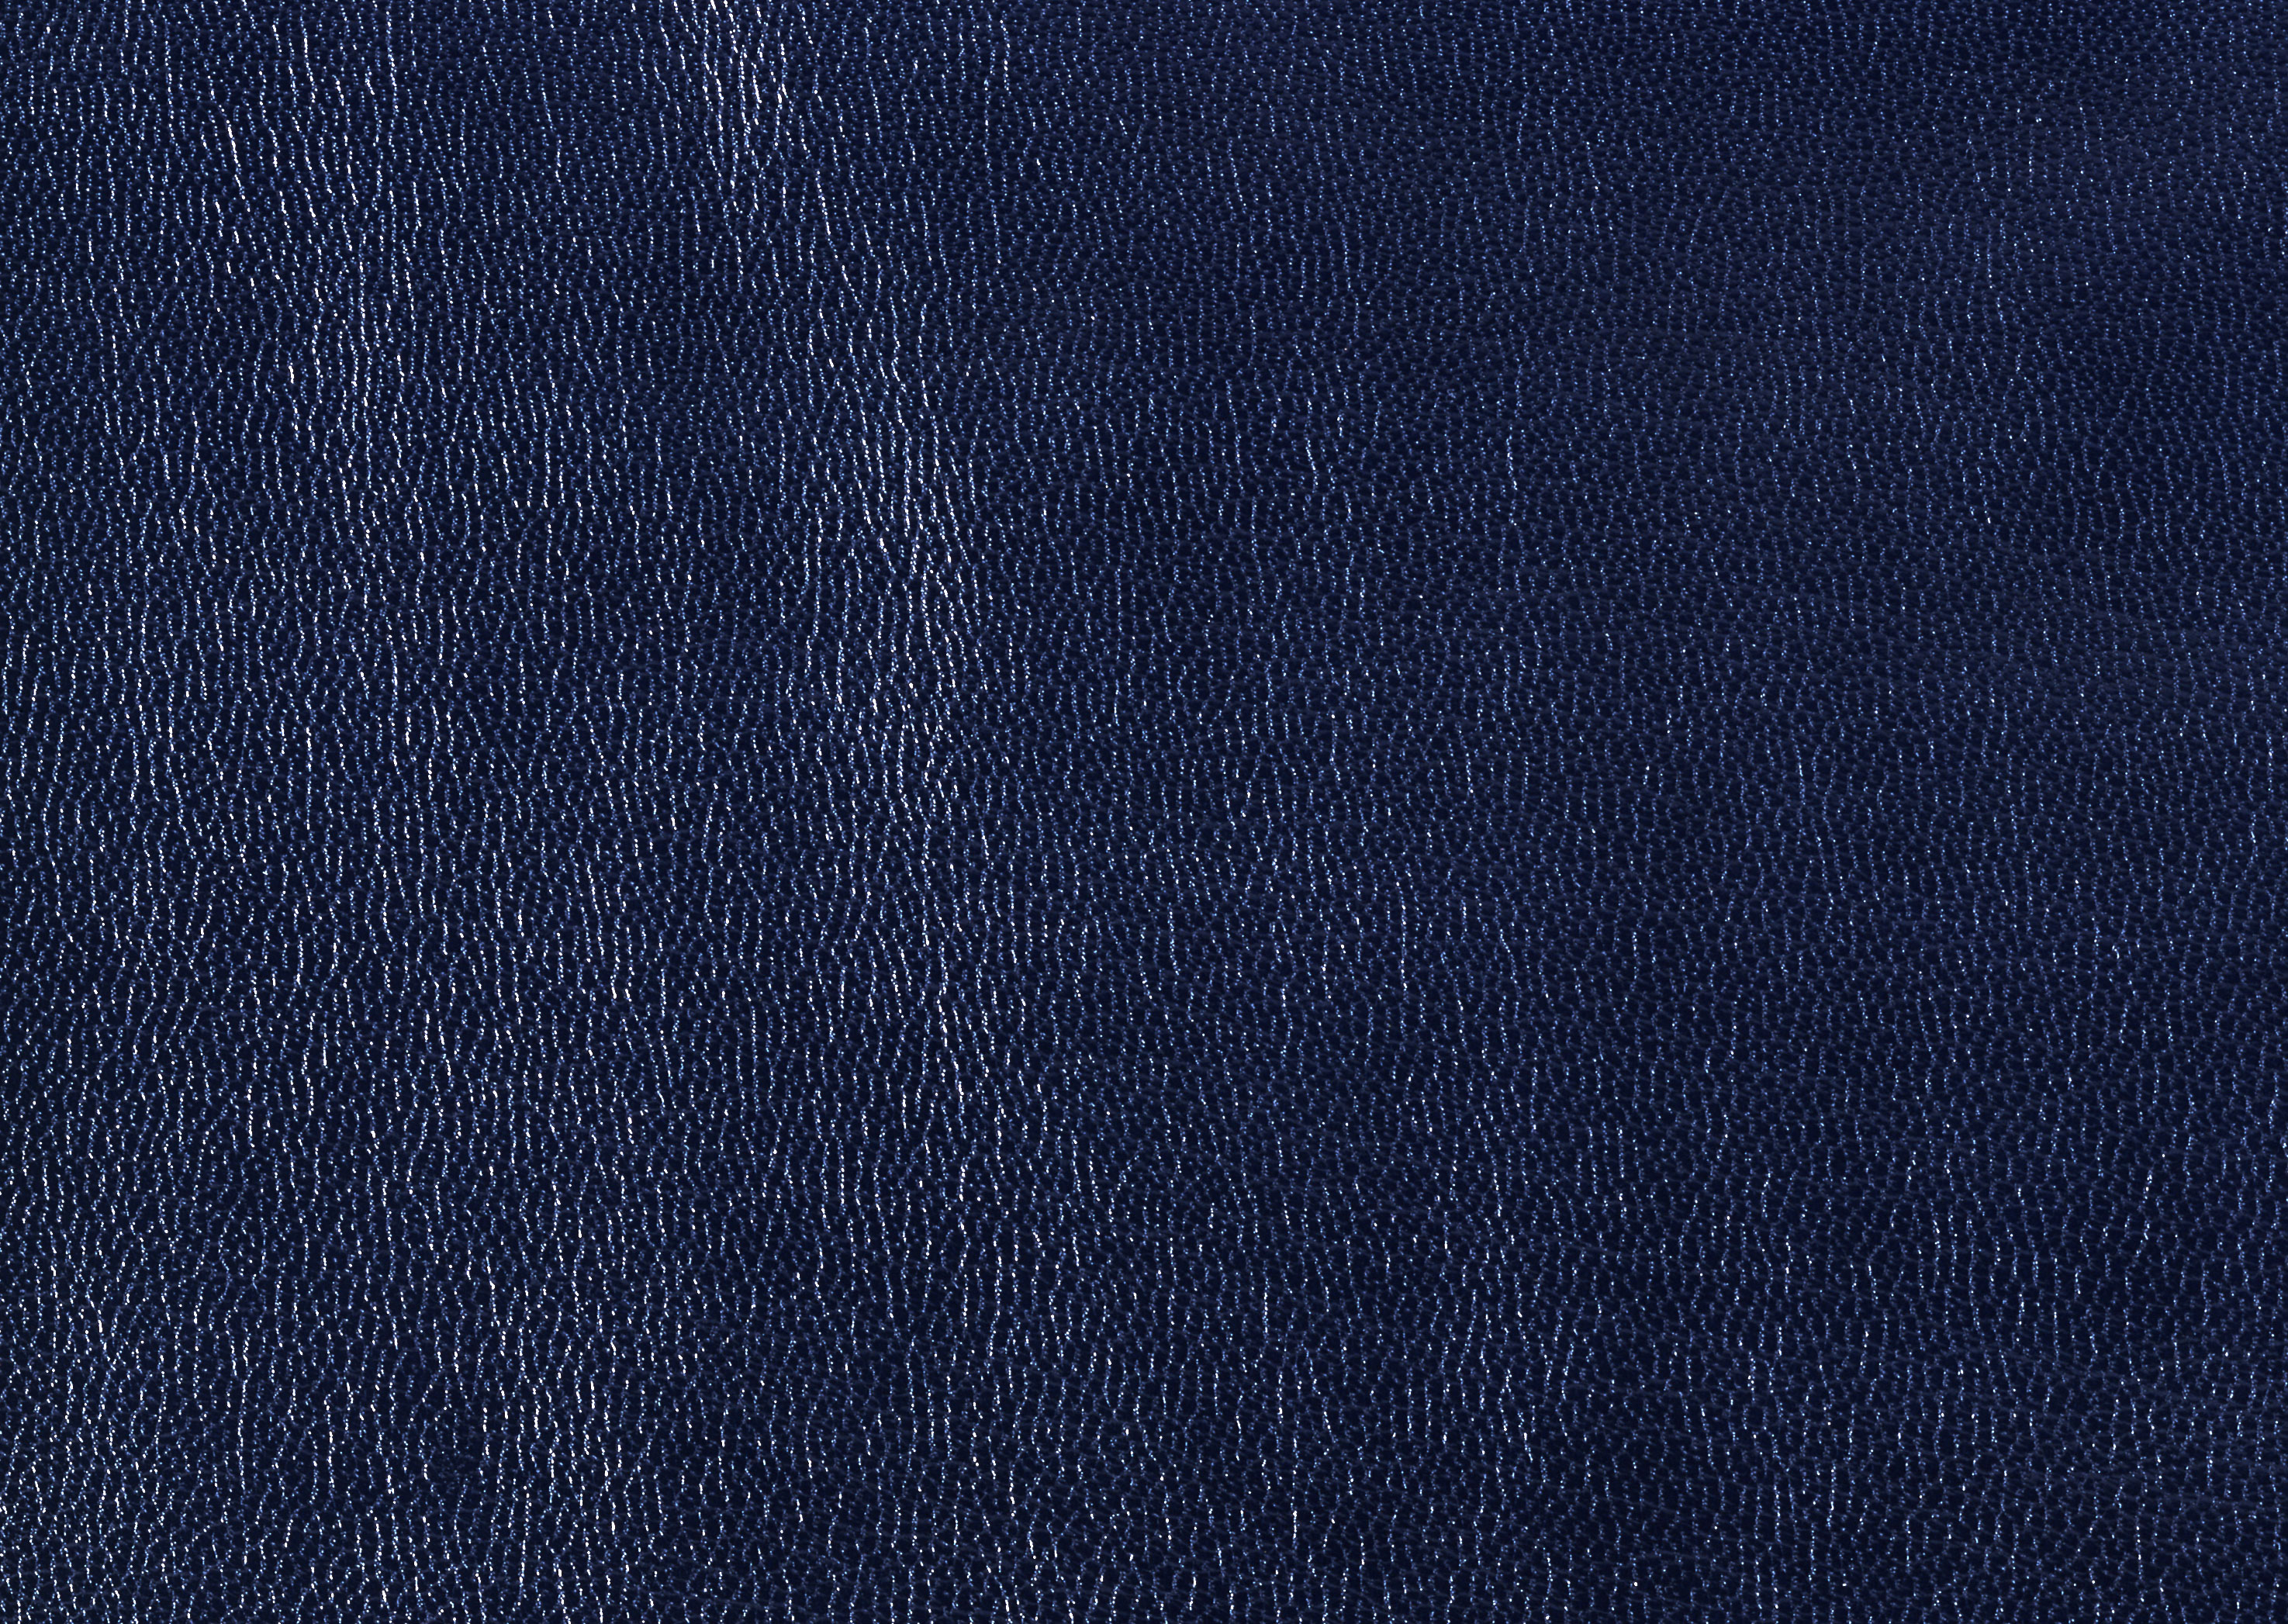 Blue leather texture background image free download for Texture background free download